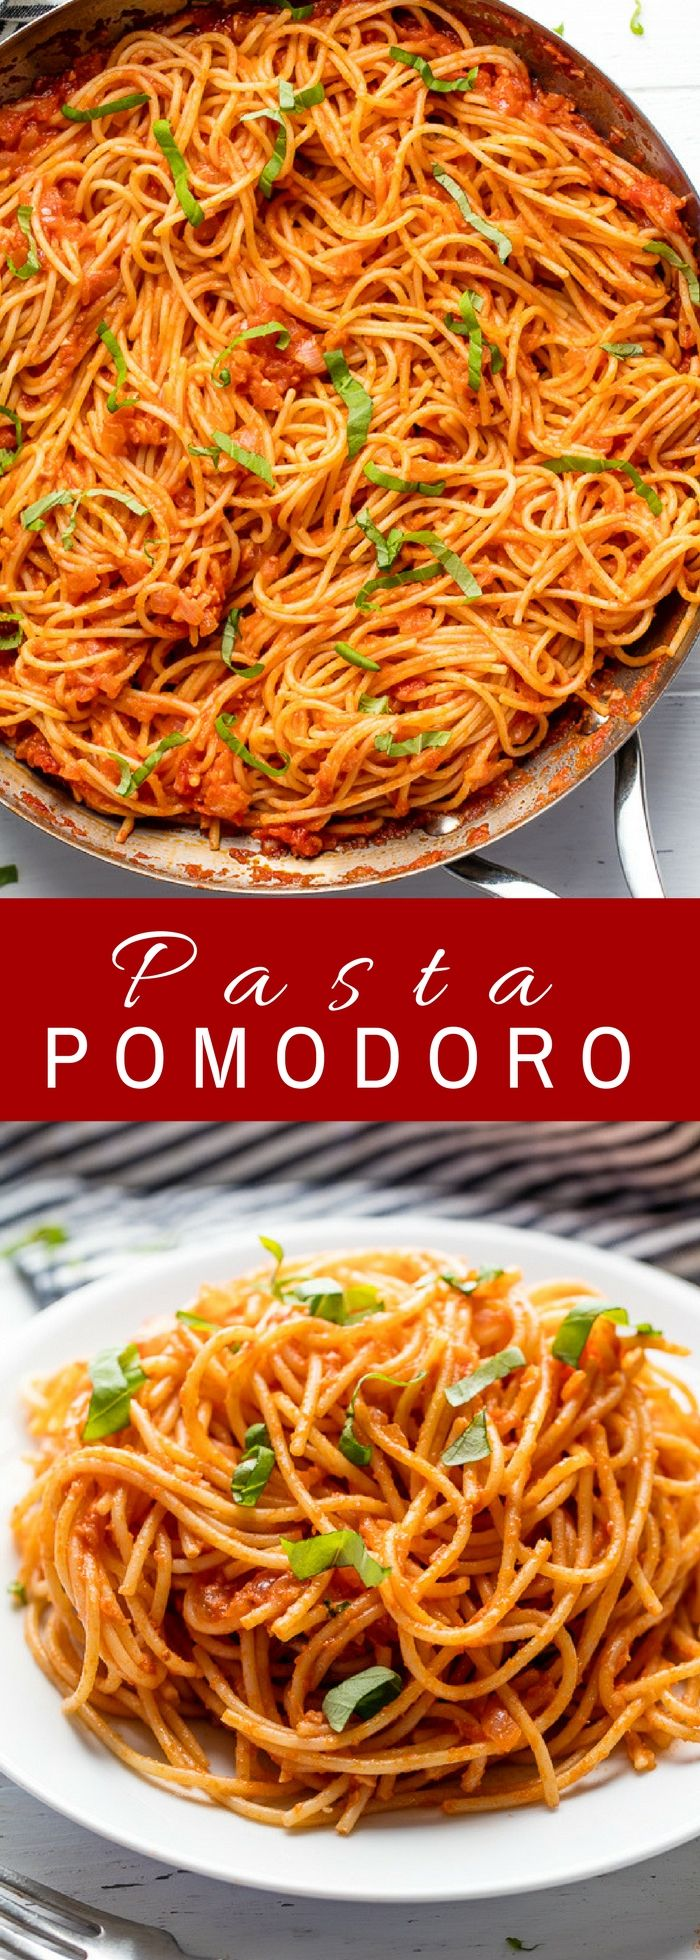 Pasta Pomodoro is a quick and easy pasta dish that will quickly become a family favorite. This quick pasta sauce is full of tomato flavor. It's simple, tasty, and total comfort food.